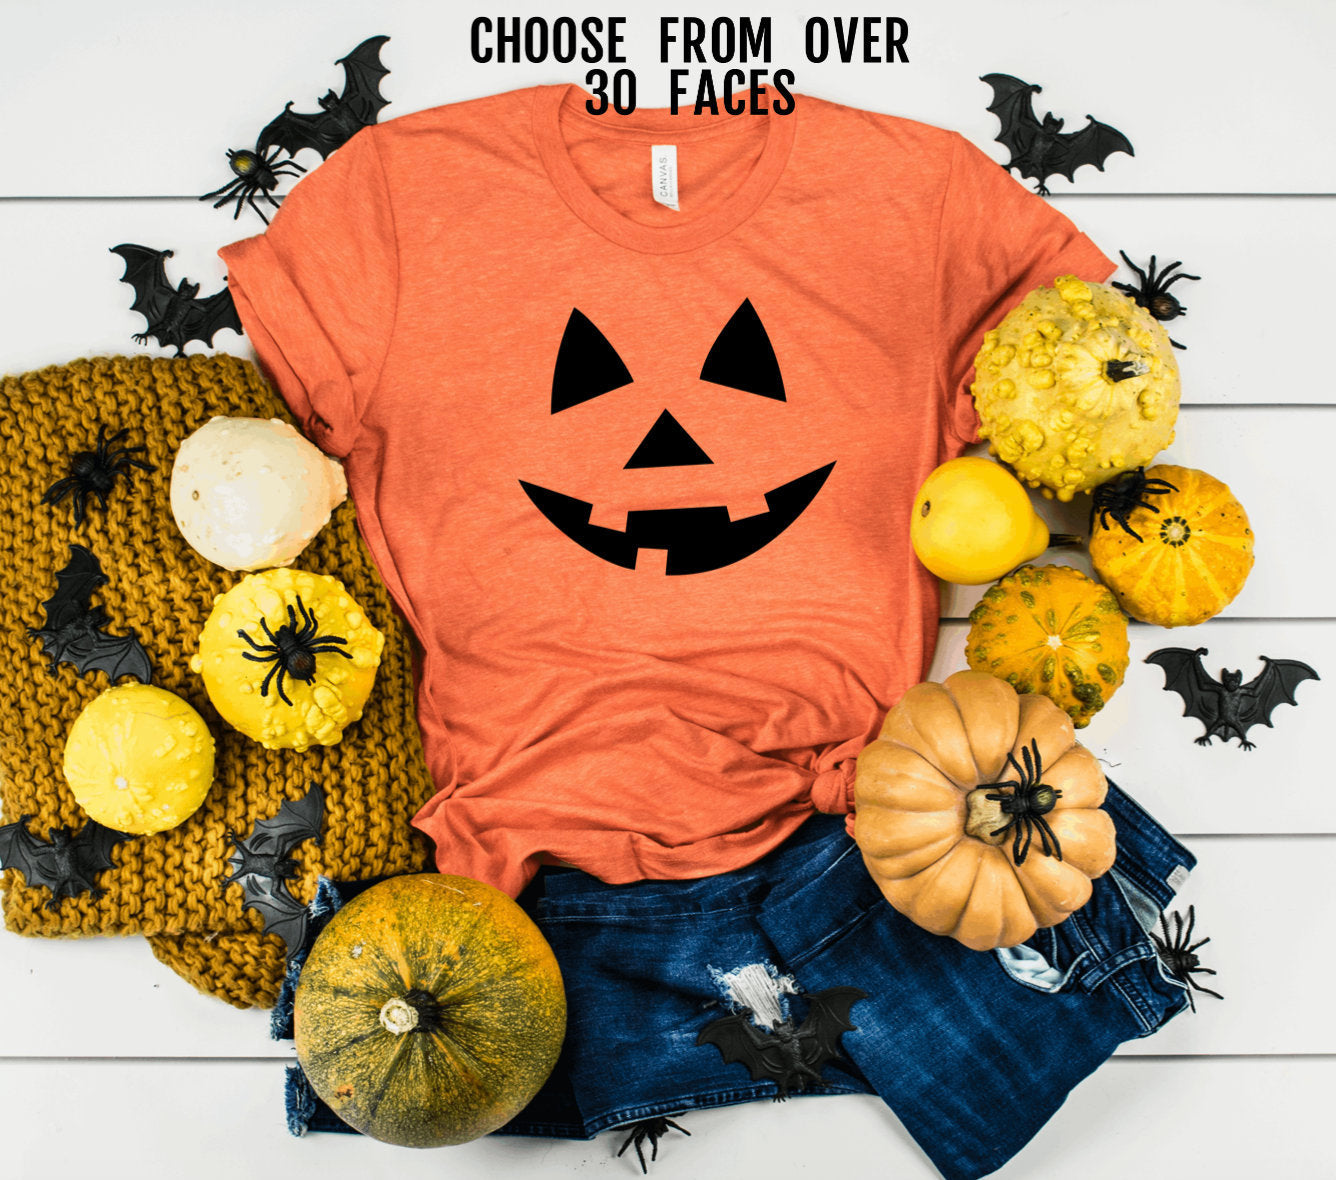 Unisex Halloween Face Shirt - Pumpkin Face Shirt - Jack O Lantern Shirt - Adult Halloween T-shirt - Pumpkin Shirt - Halloween Party Shirt